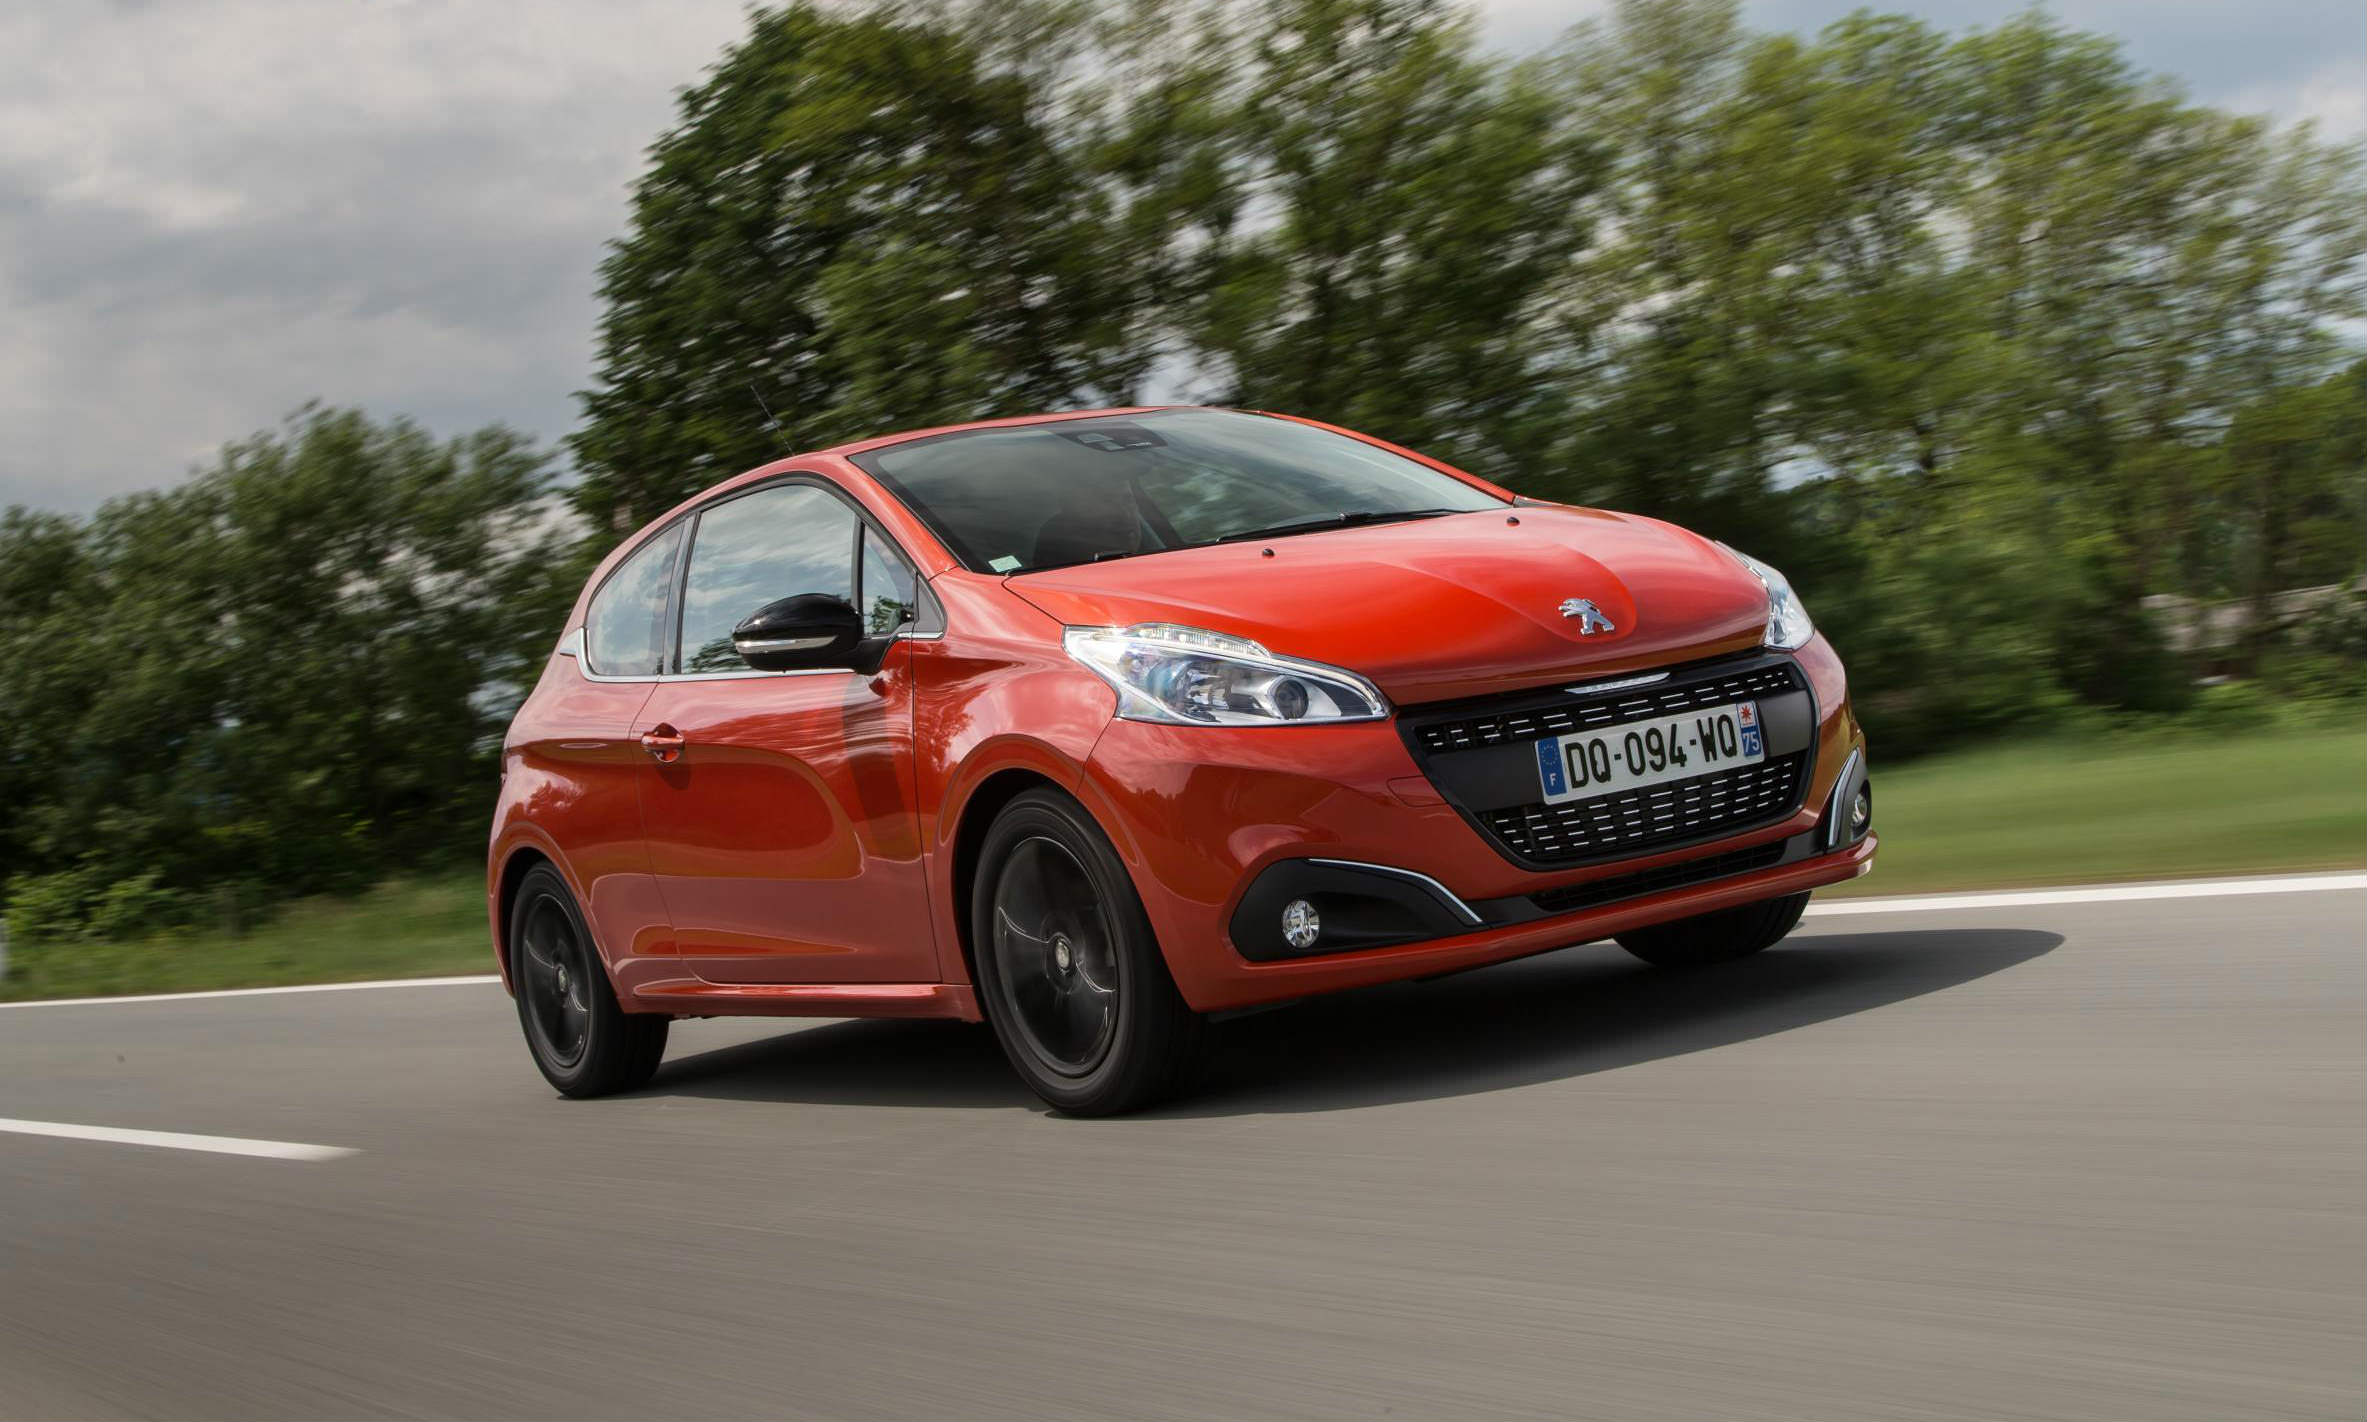 Most reliable Cars - Peugeot 208